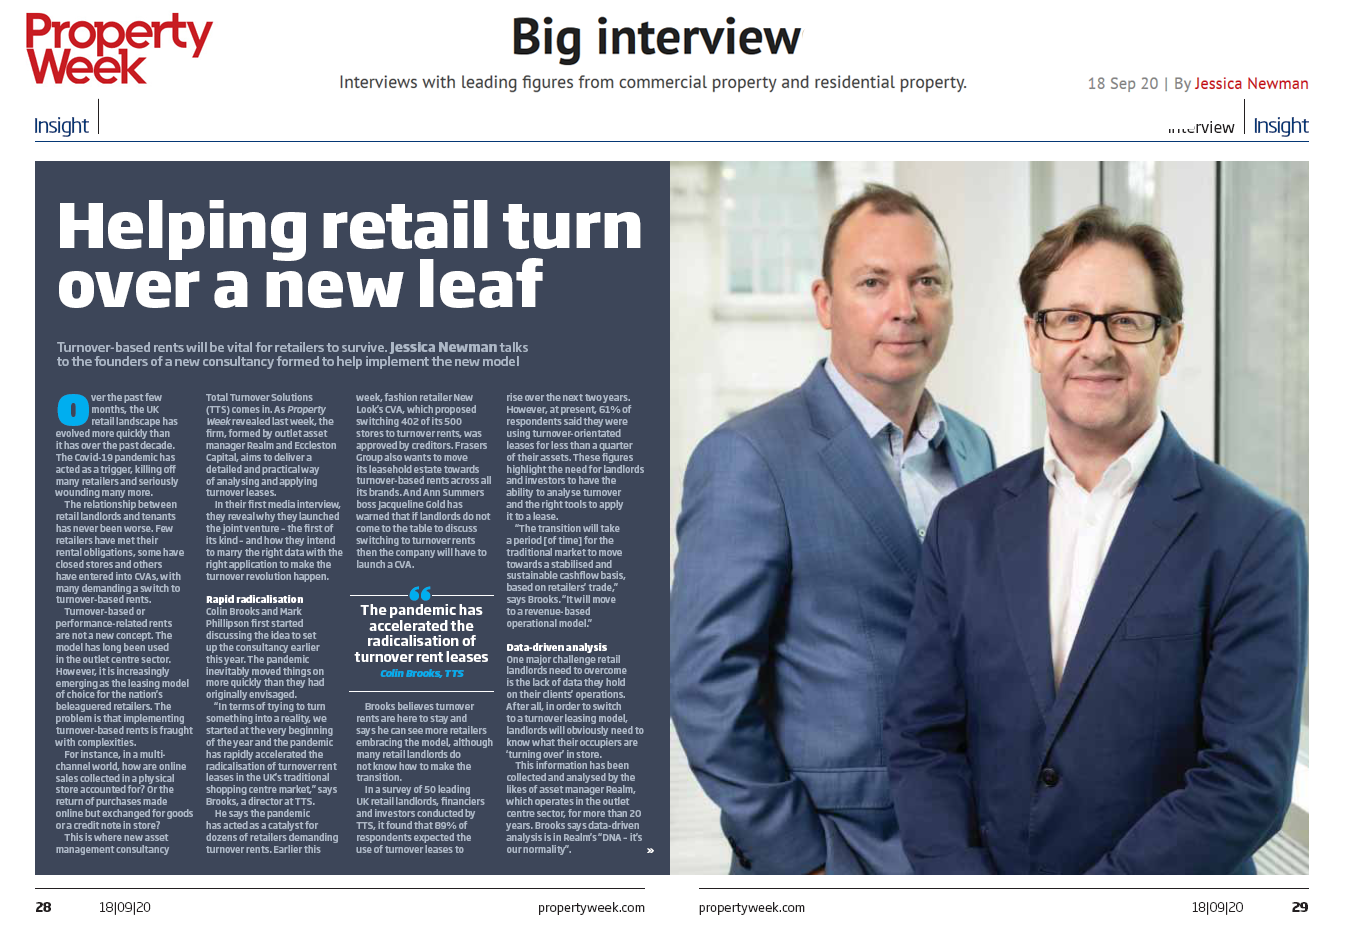 Helping retail turn over a new leaf